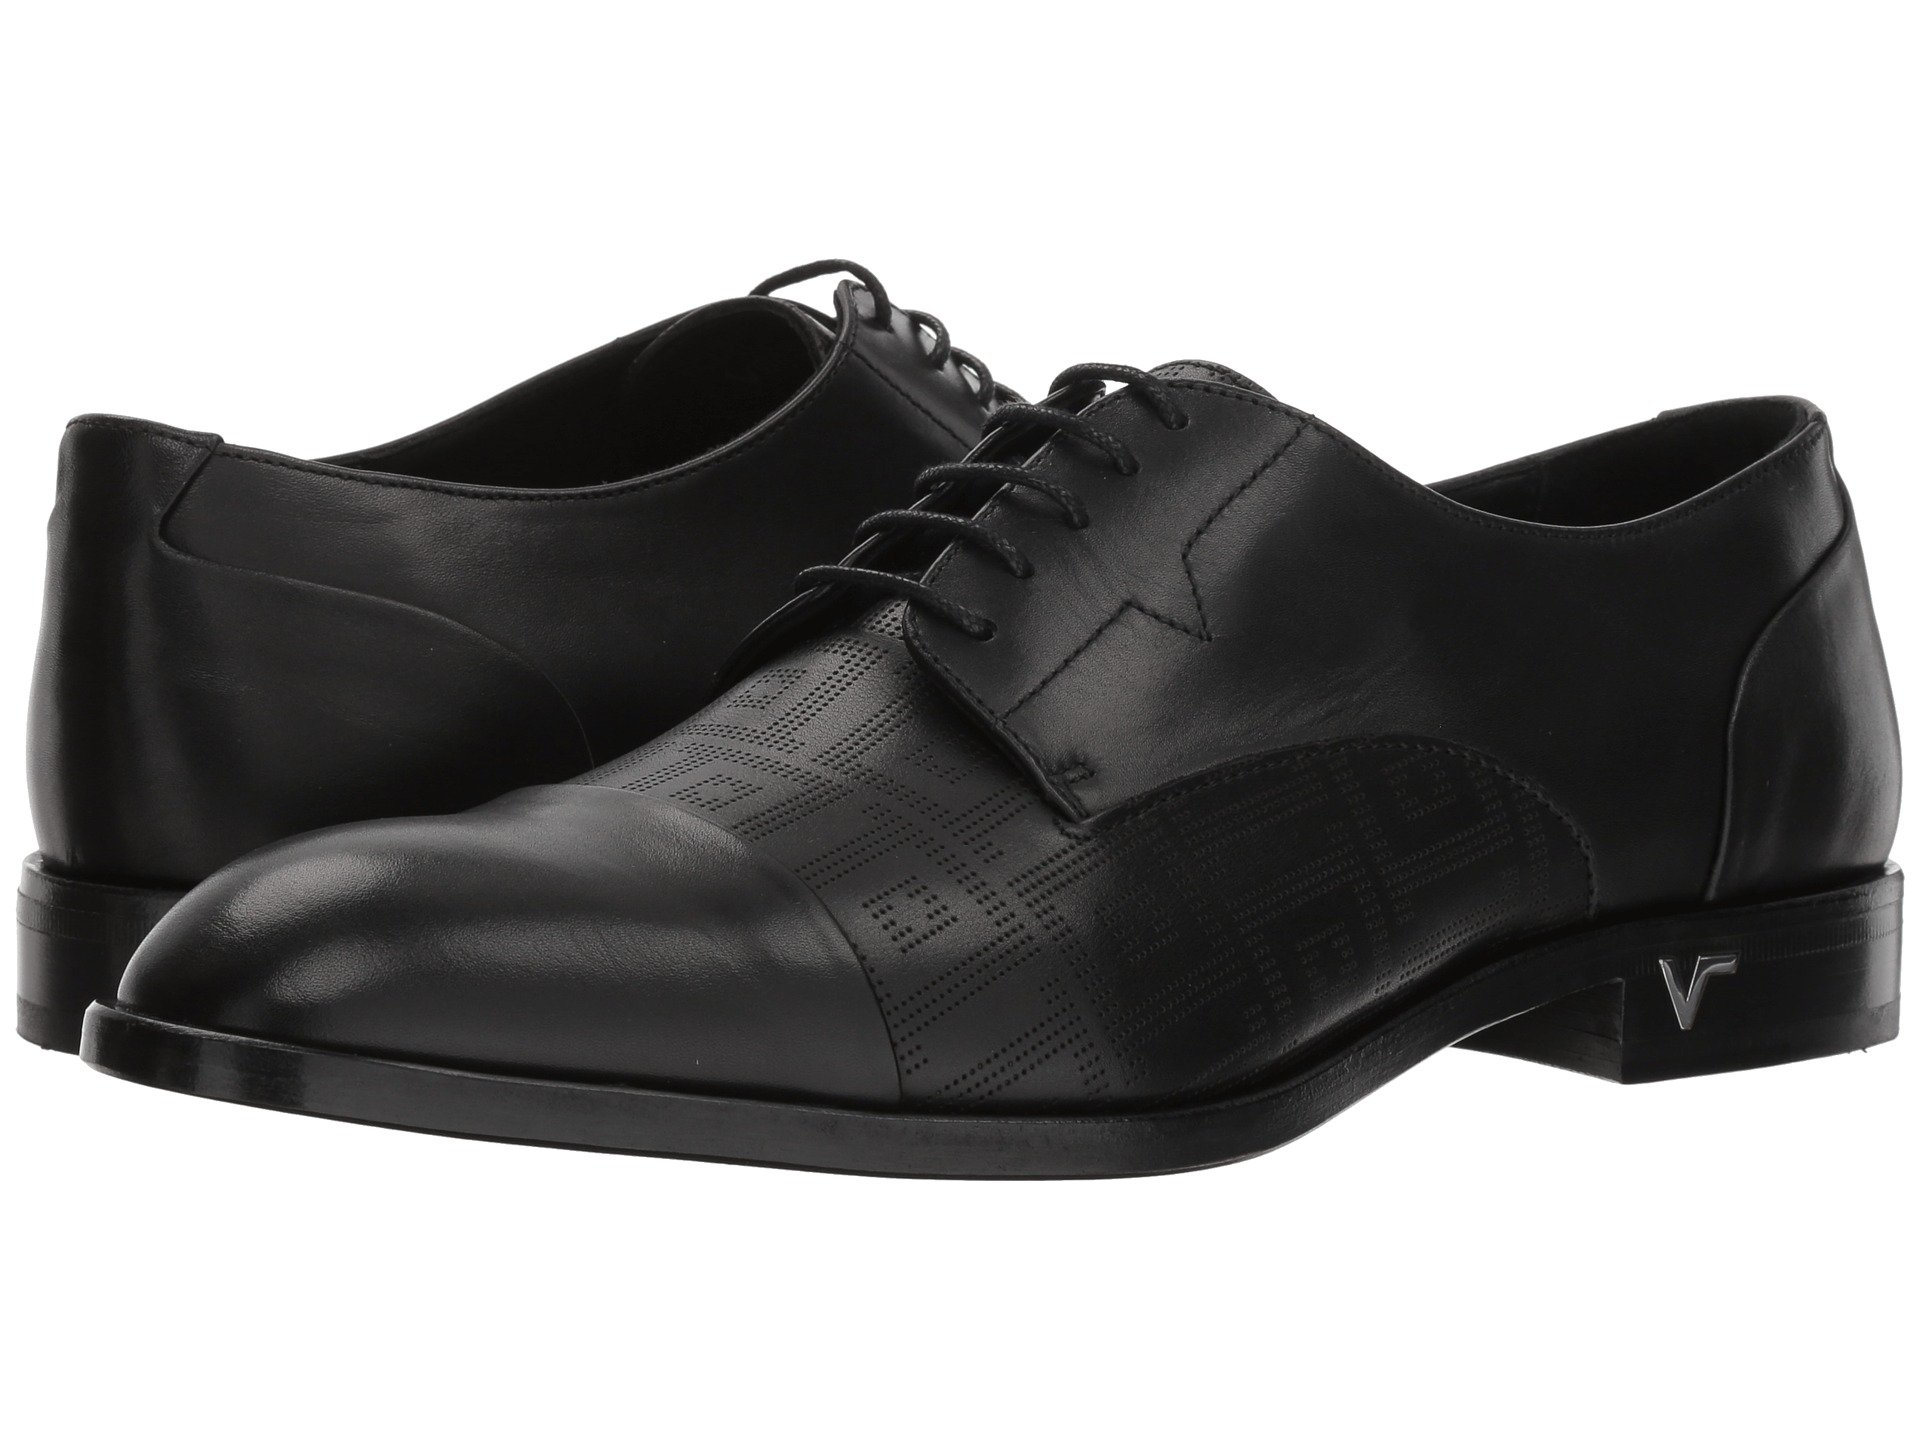 Calzado tipo Oxford para Hombre Versace Collection Greca Perforated Oxford  + Versace en VeoyCompro.net